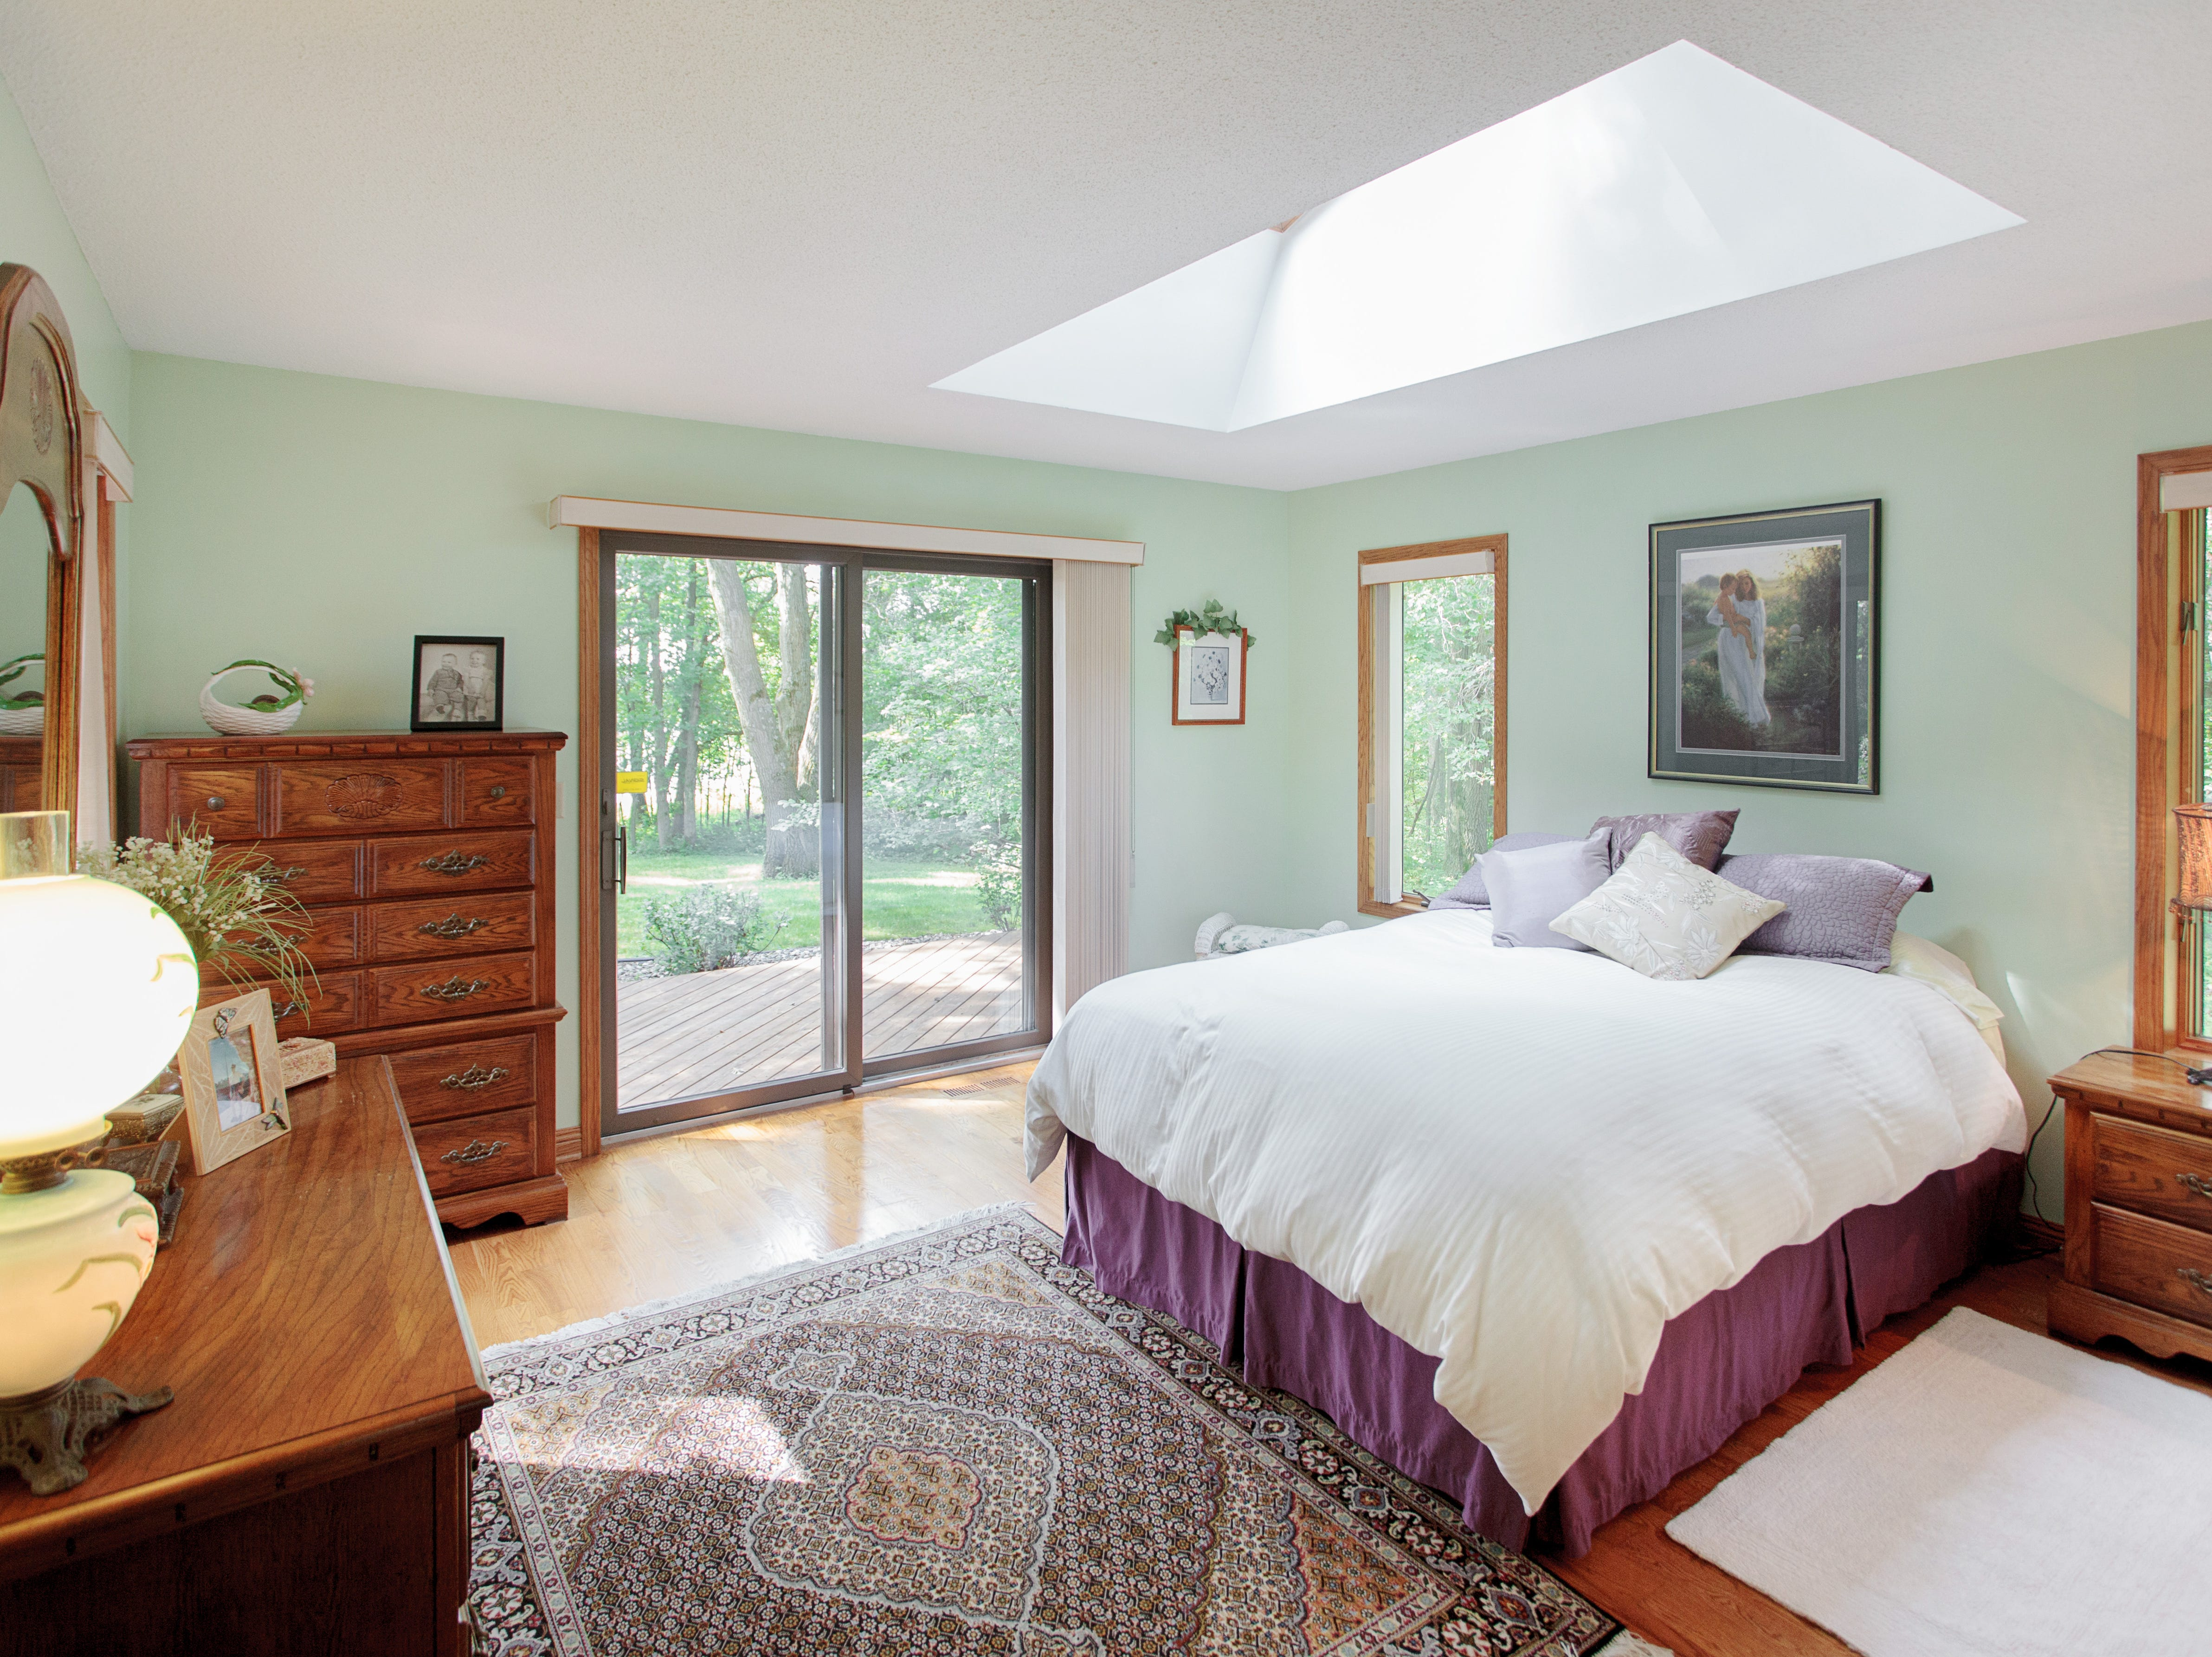 The master bedroom features its own large skylight for nighttime viewing.